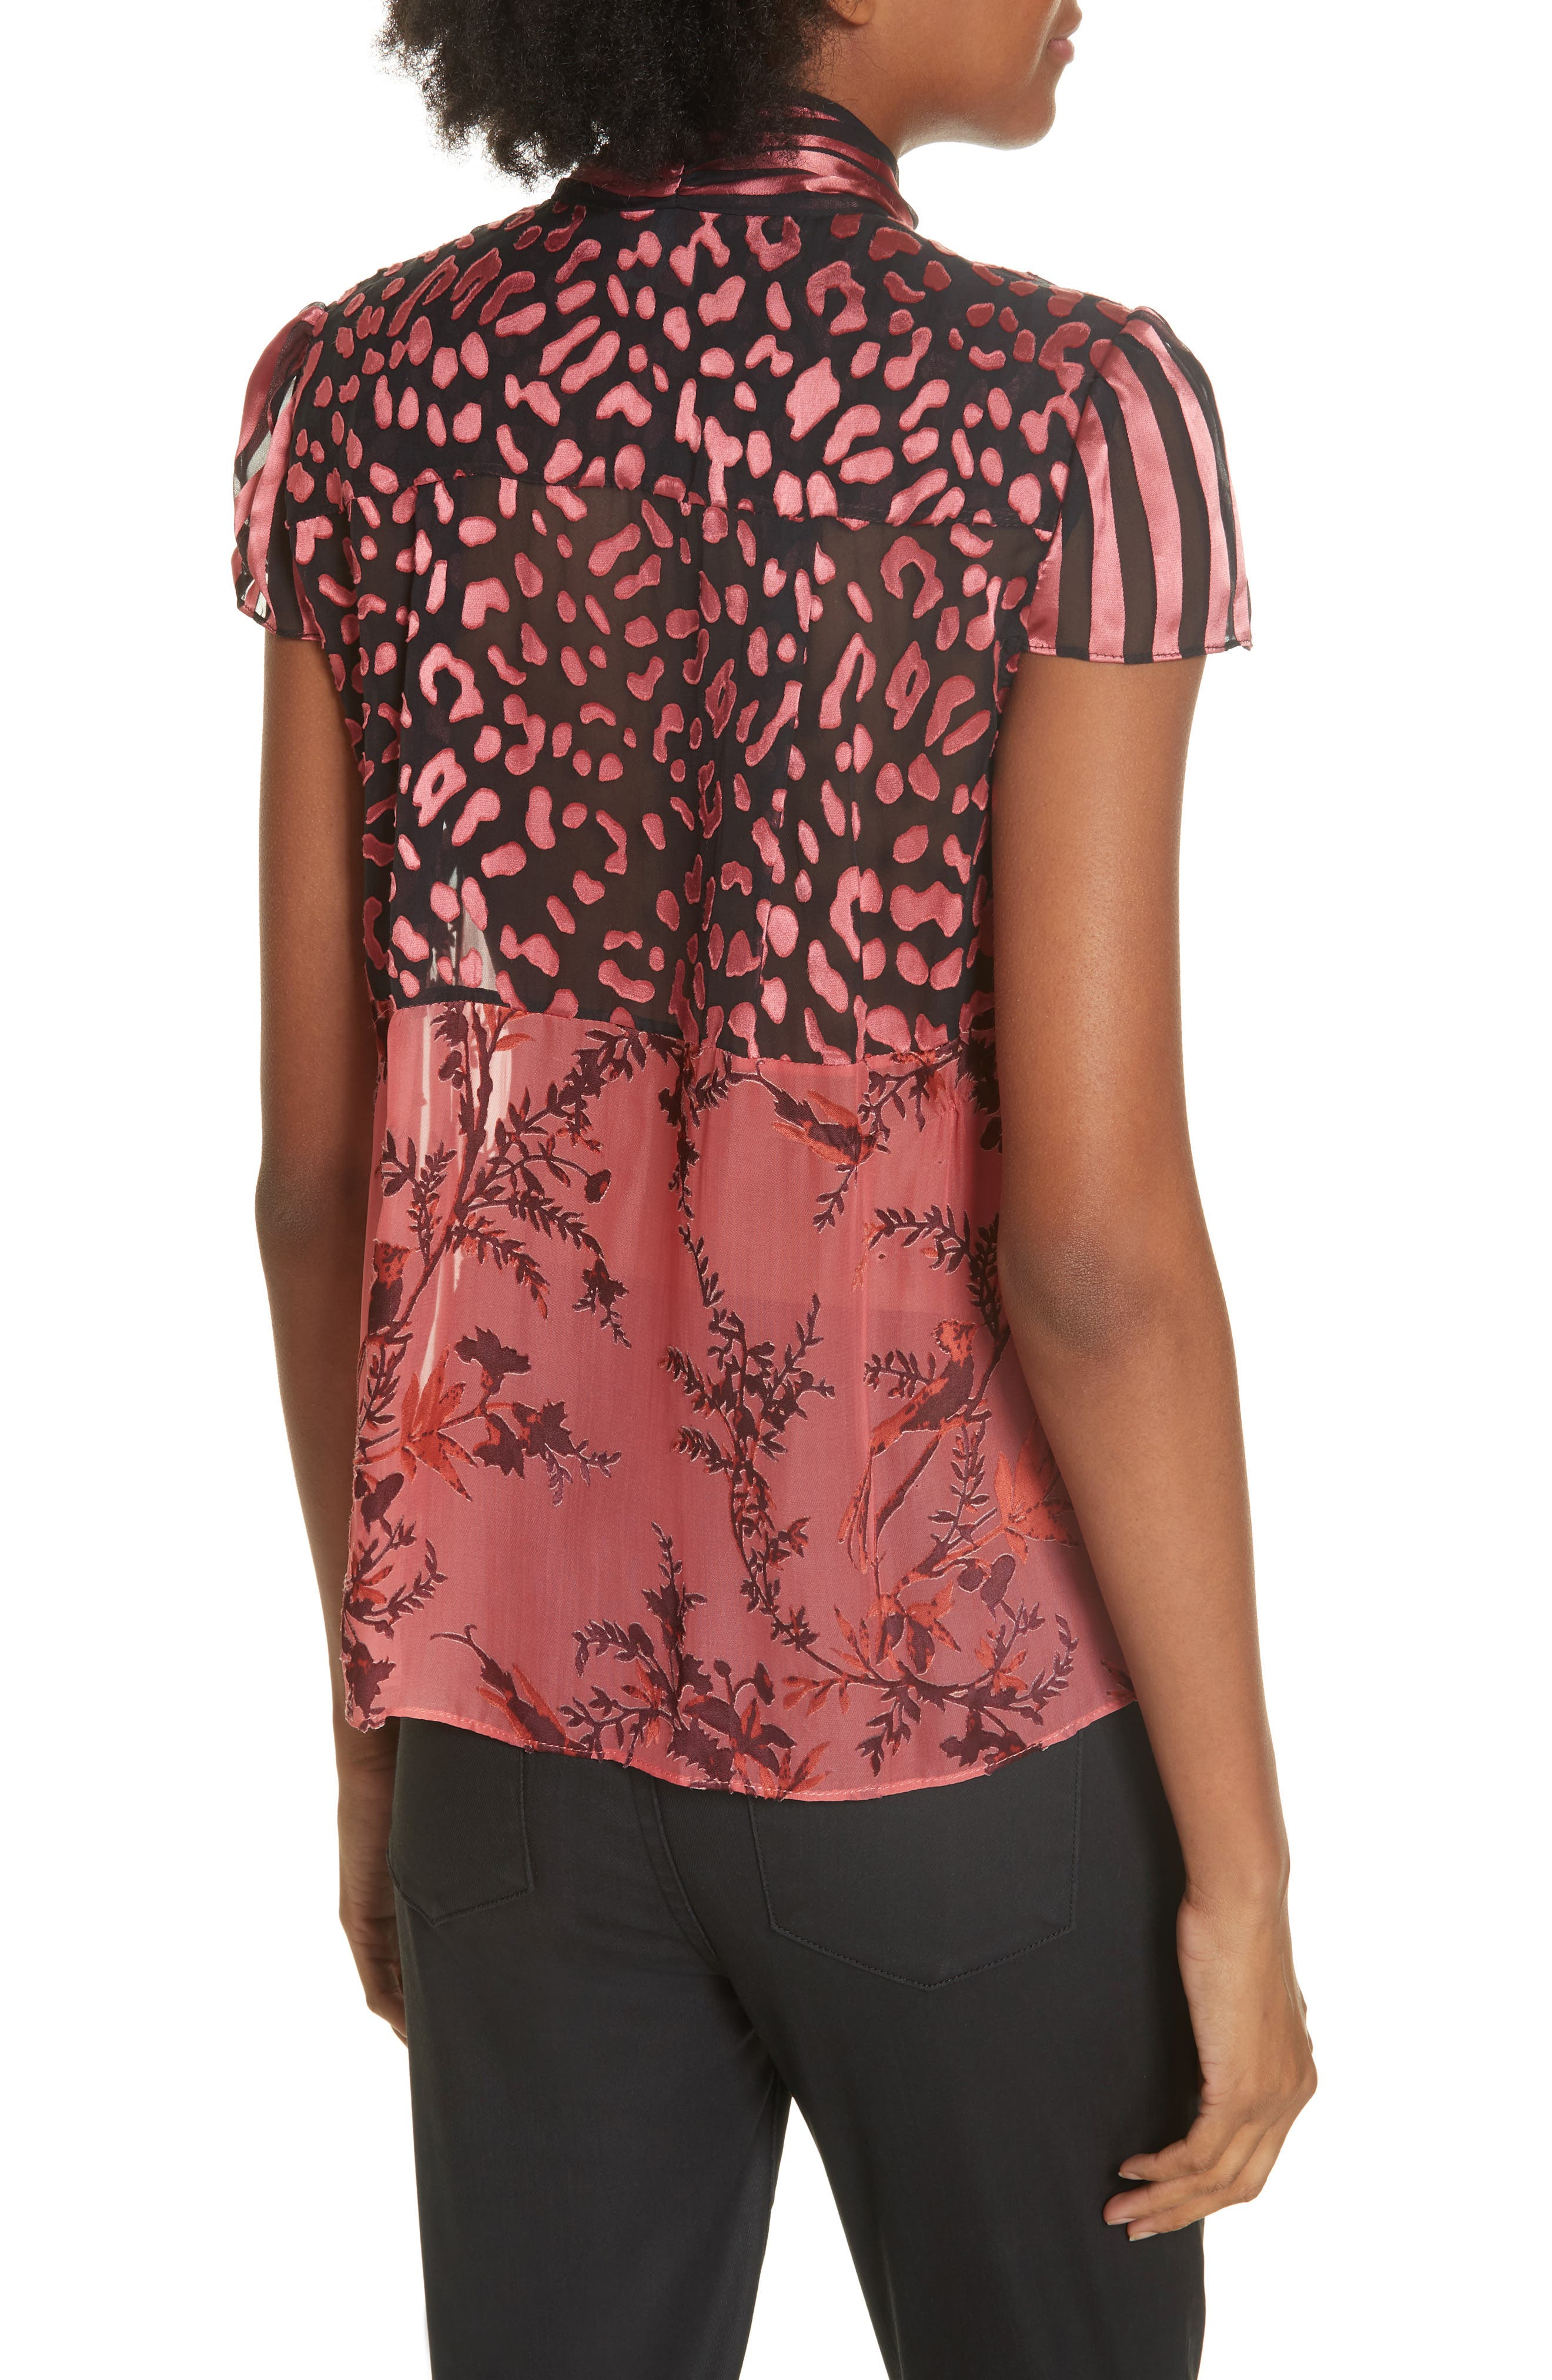 Jeannie Bow Neck Blouse,                             Alternate thumbnail 2, color,                             TWO TONE BIRD/ ROSE